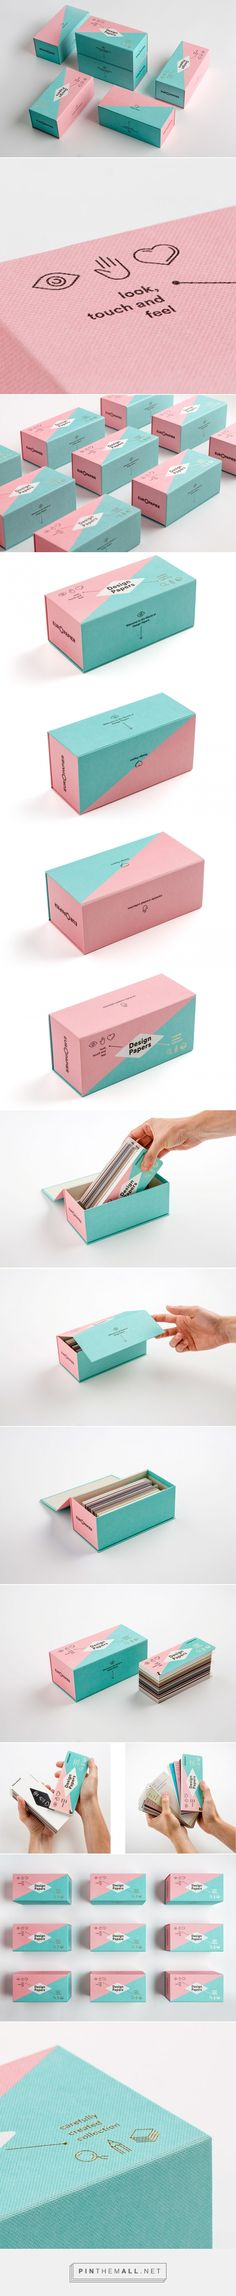 Design Papers 2016 ‪#‎packaging‬ ‪#‎design‬ by Metaklinika (‪#‎Serbia‬)…